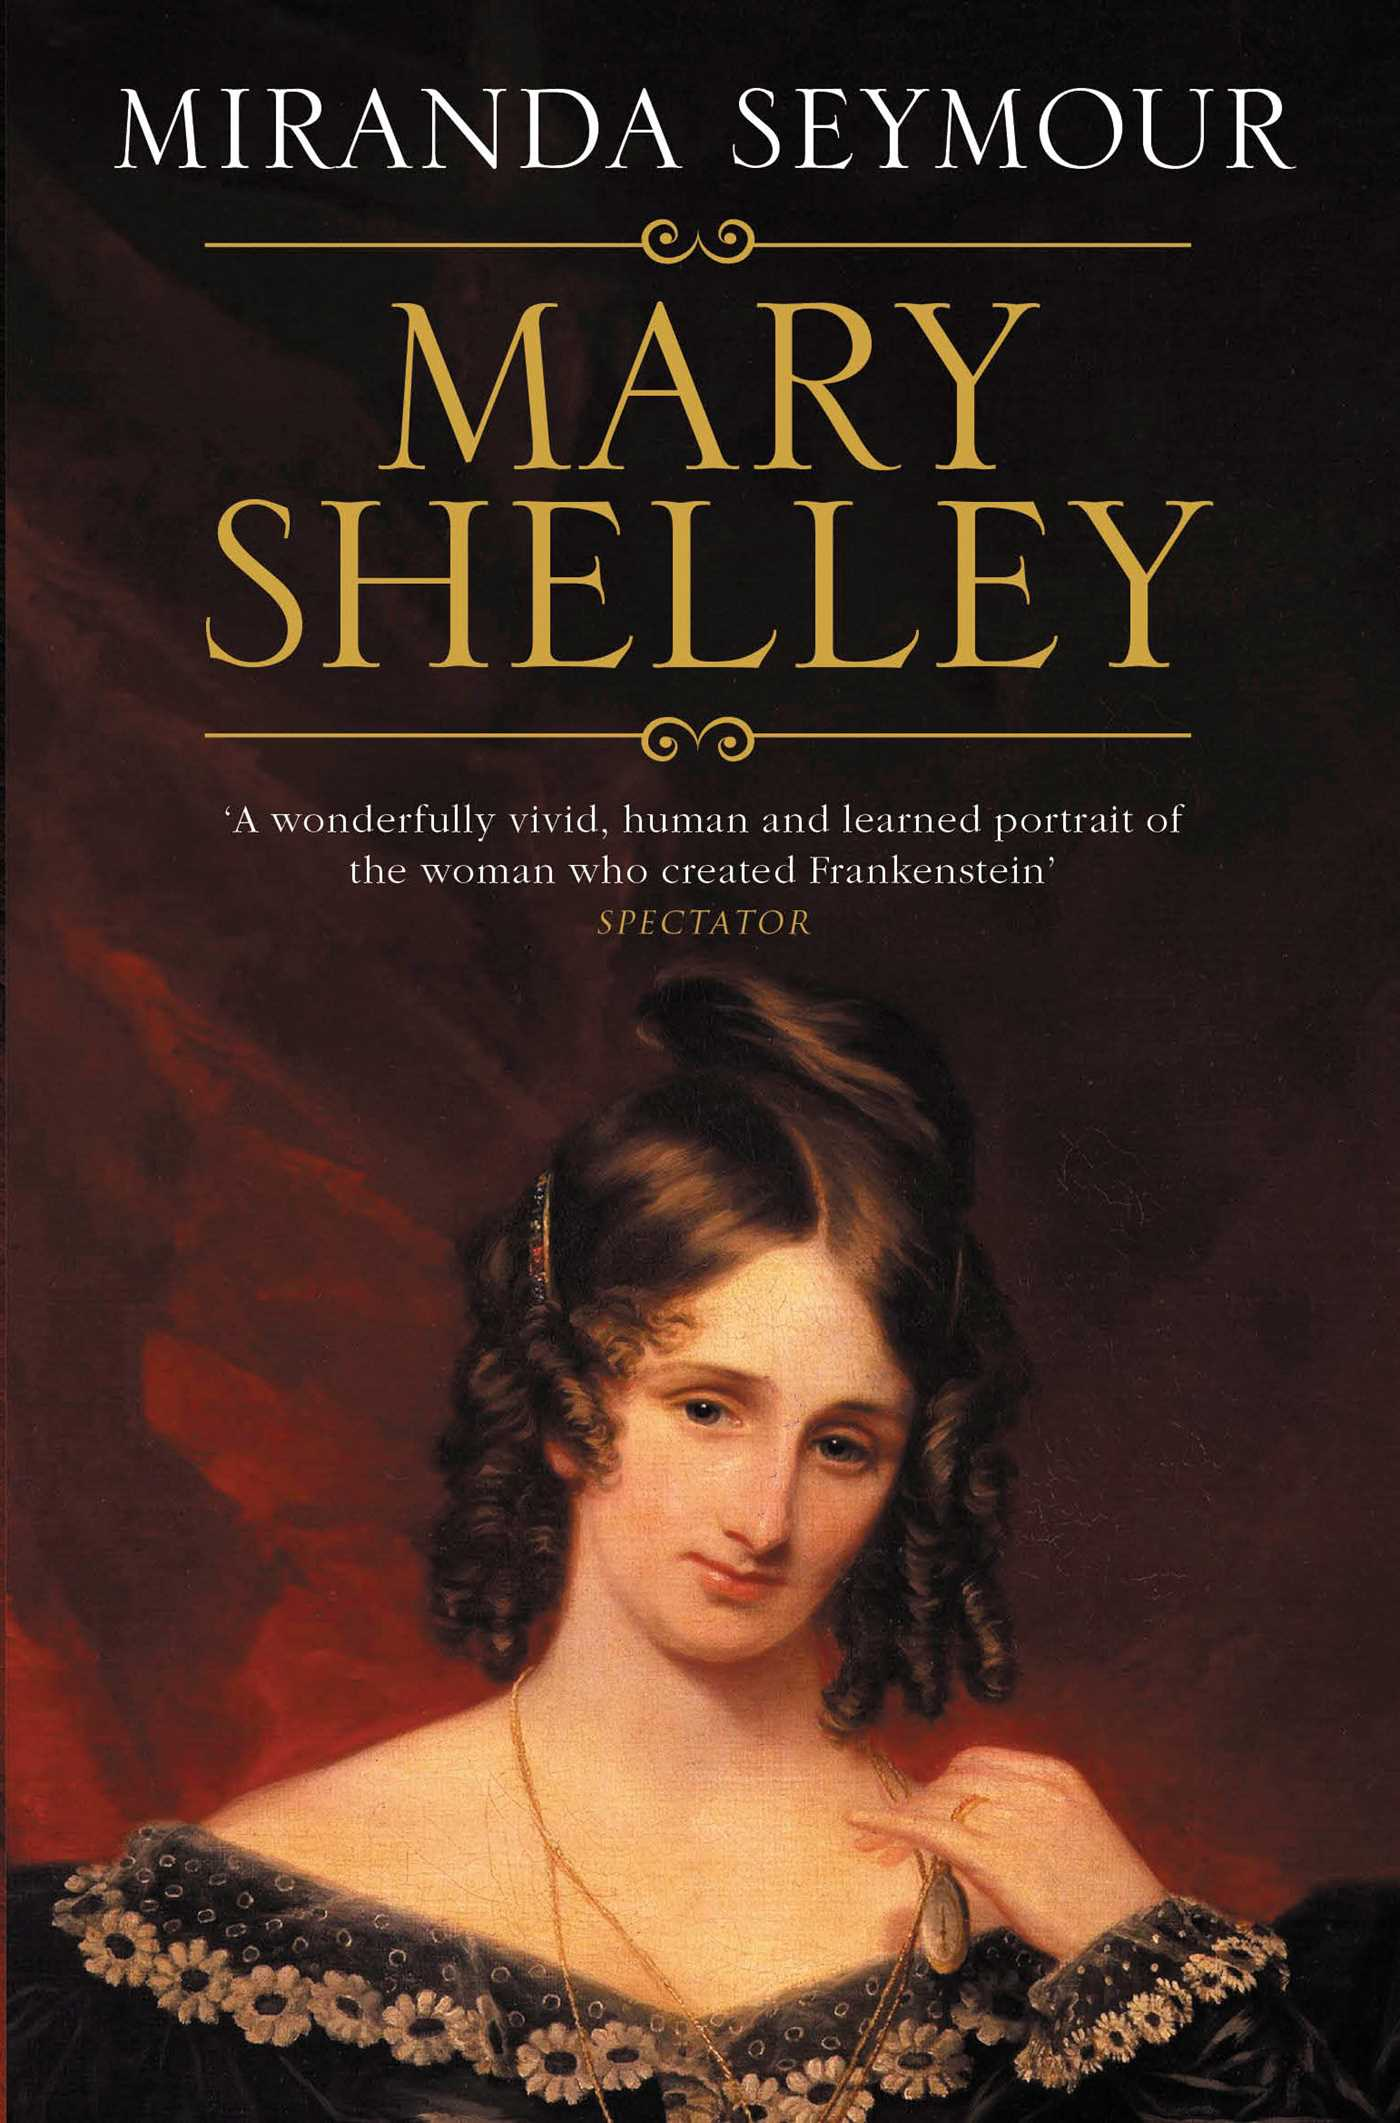 mary shelleys frankenstein movie vs book essay Frankenstein essay in mary shelly's frankenstein, it is not just a horrifying gothic novel about a mysterious creature it also contains the authors ethical outlook on scientific and moral issues issues that mary shelly discussed were natural vs unnatural or biotechnology, social expectance, and homosexuality.